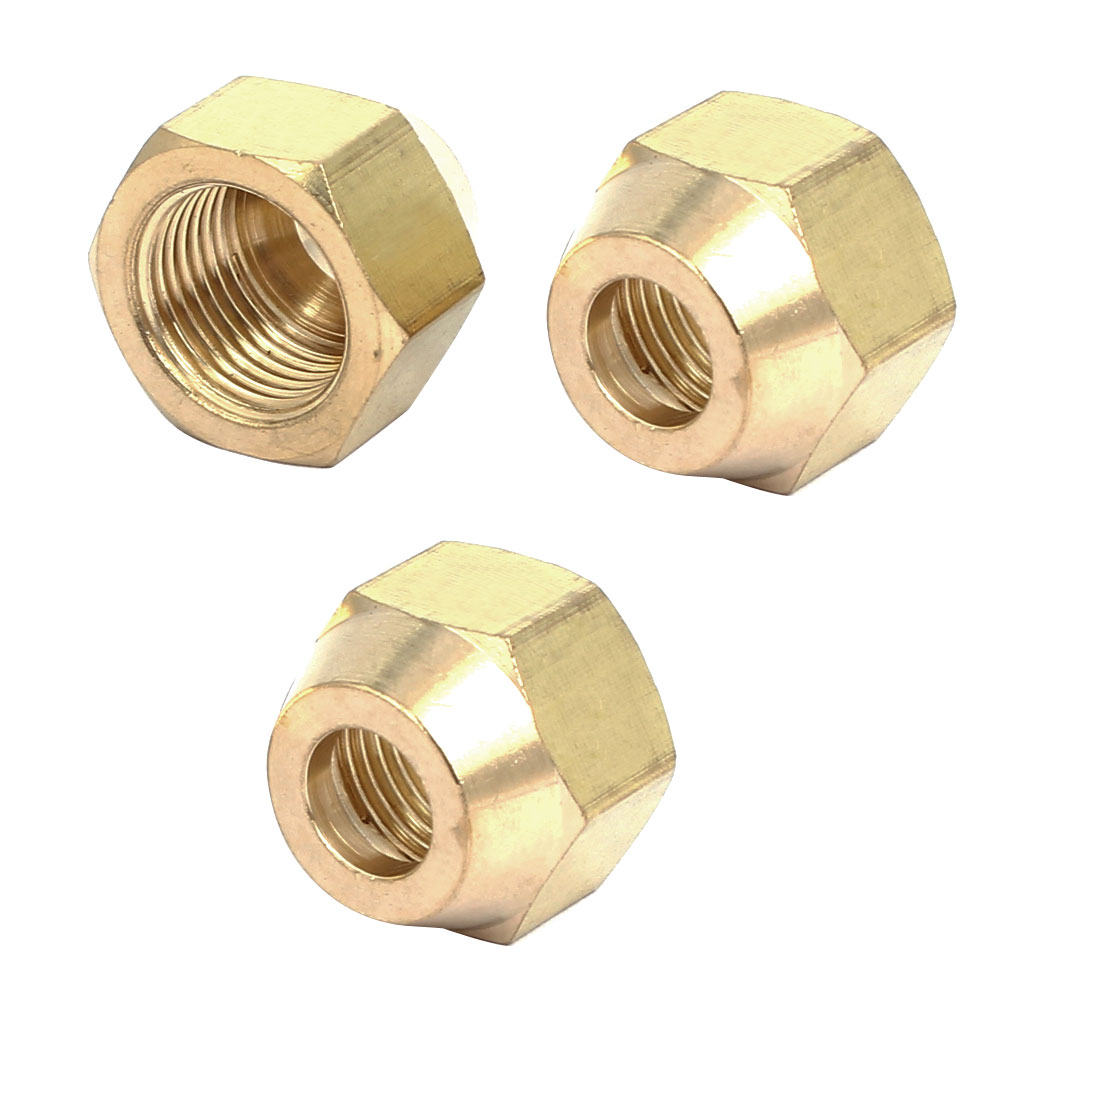 3/8BSP Brass Flare Nuts Air Conditioner Parts Fittings 3pcs for 10mm Dia Pipe